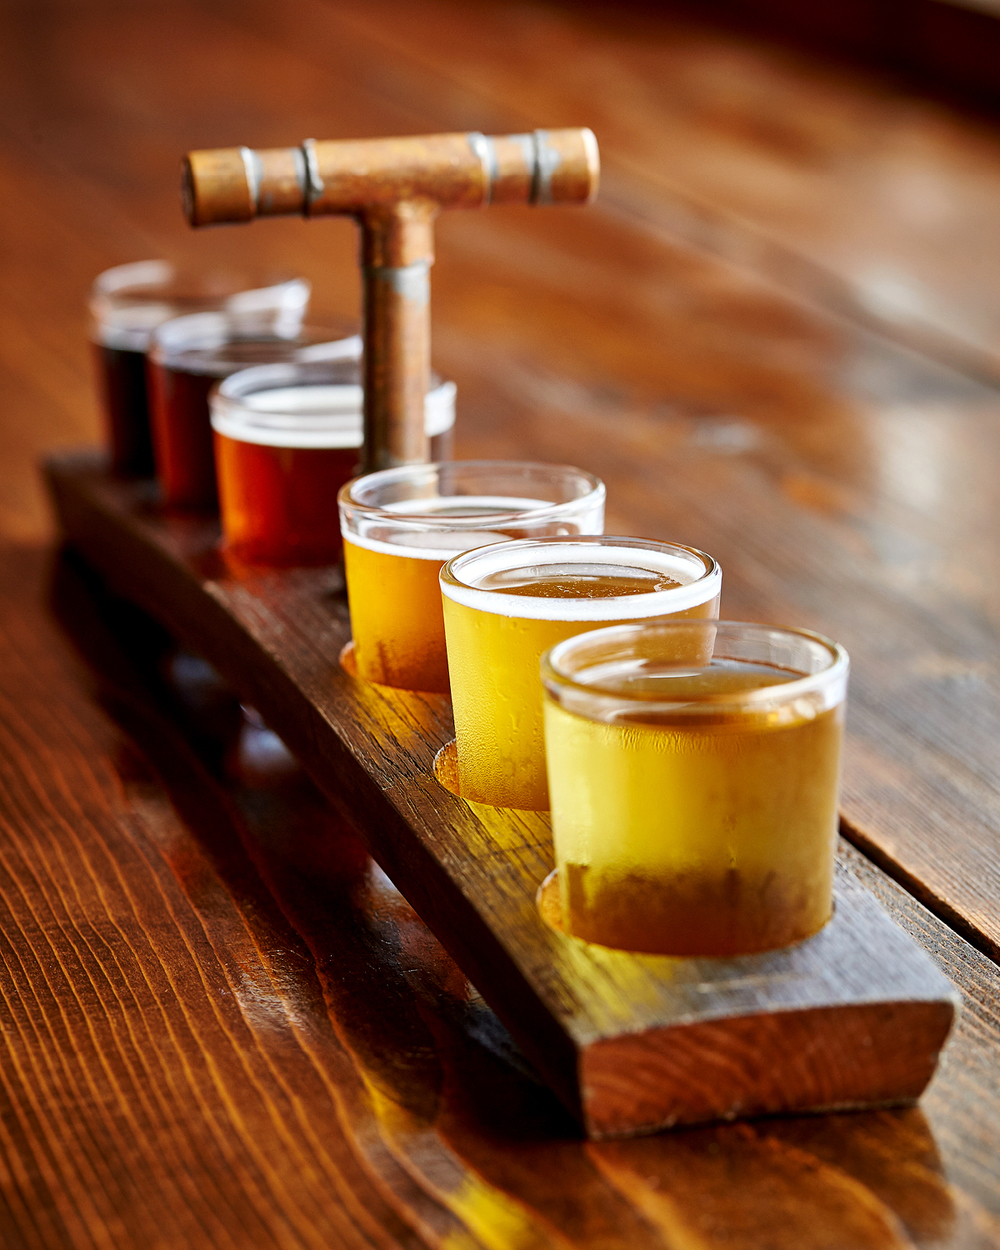 FLIGHT OF CRAFT BEER AT HONOLULU BEERWORKS